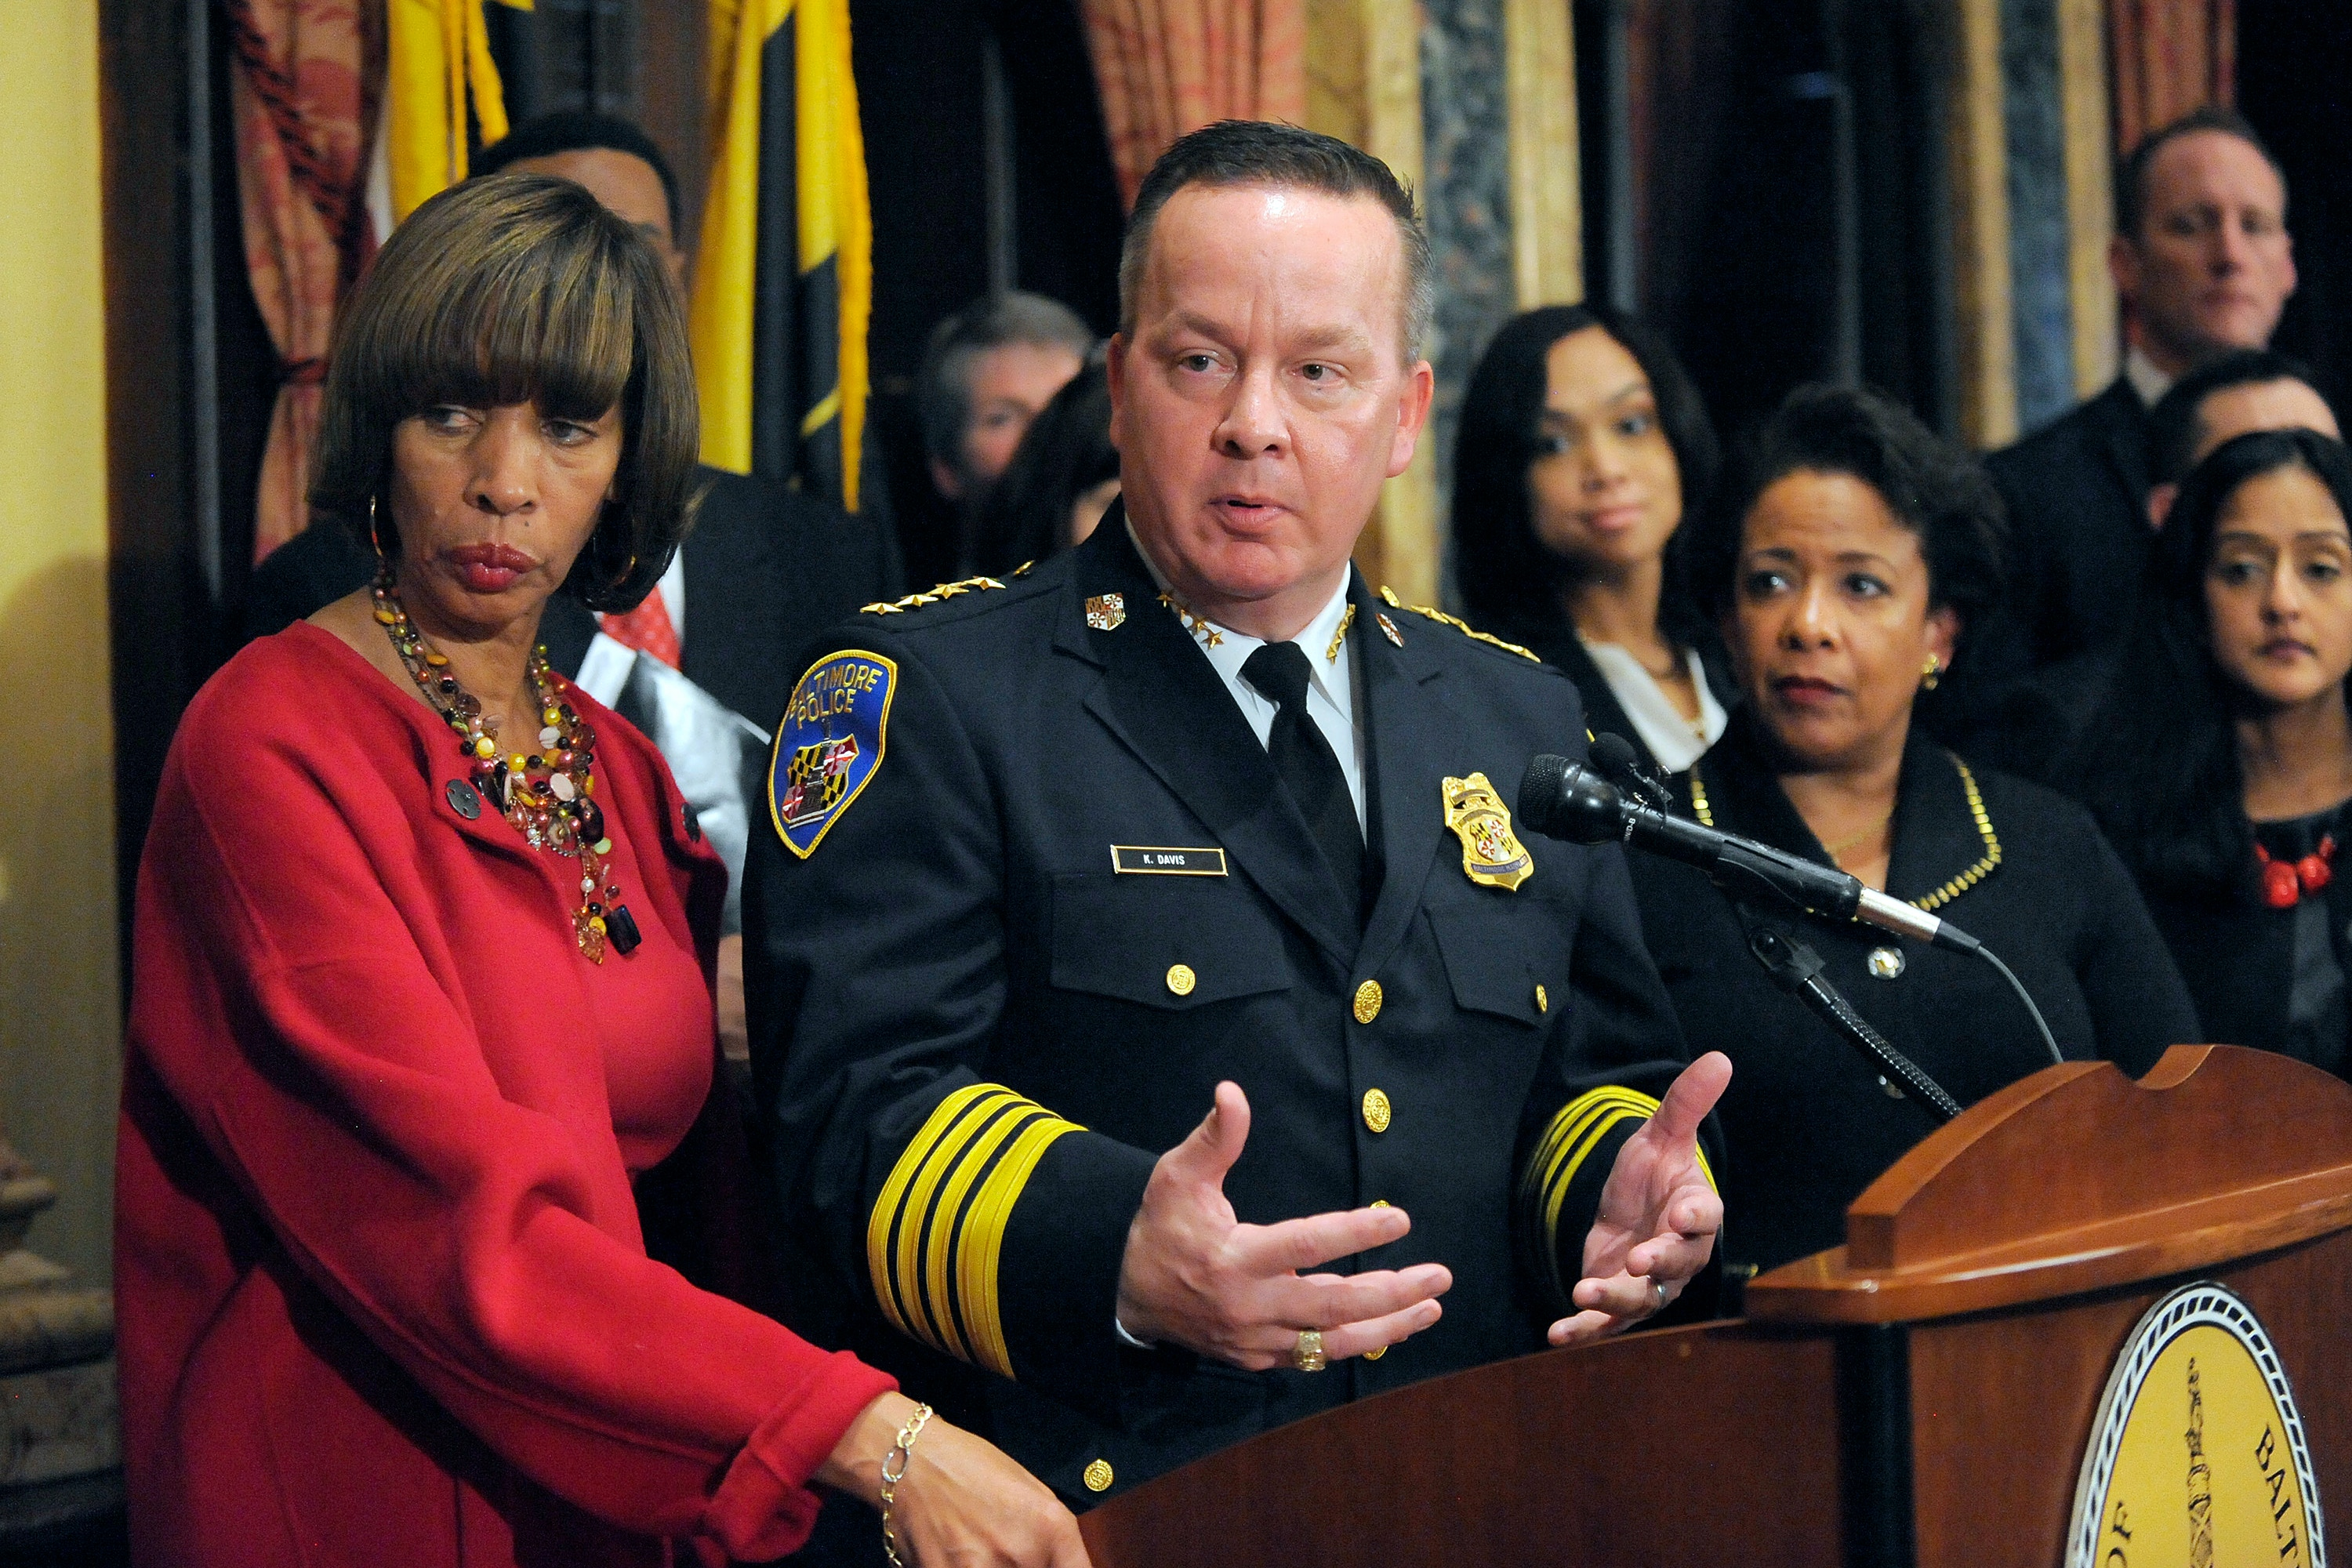 Baltimore City Police Commissioner Kevin Davis, along with Mayor Catherine E. Pugh and U.S. Attorney General Loretta E. Lynch, on Thursday, Jan. 12, 2017 at City Hall to announce an agreement on the Department of Justice Consent Decree concerning practices by the Baltimore Police Department. (Lloyd Fox/Baltimore Sun/TNS via Getty Images)